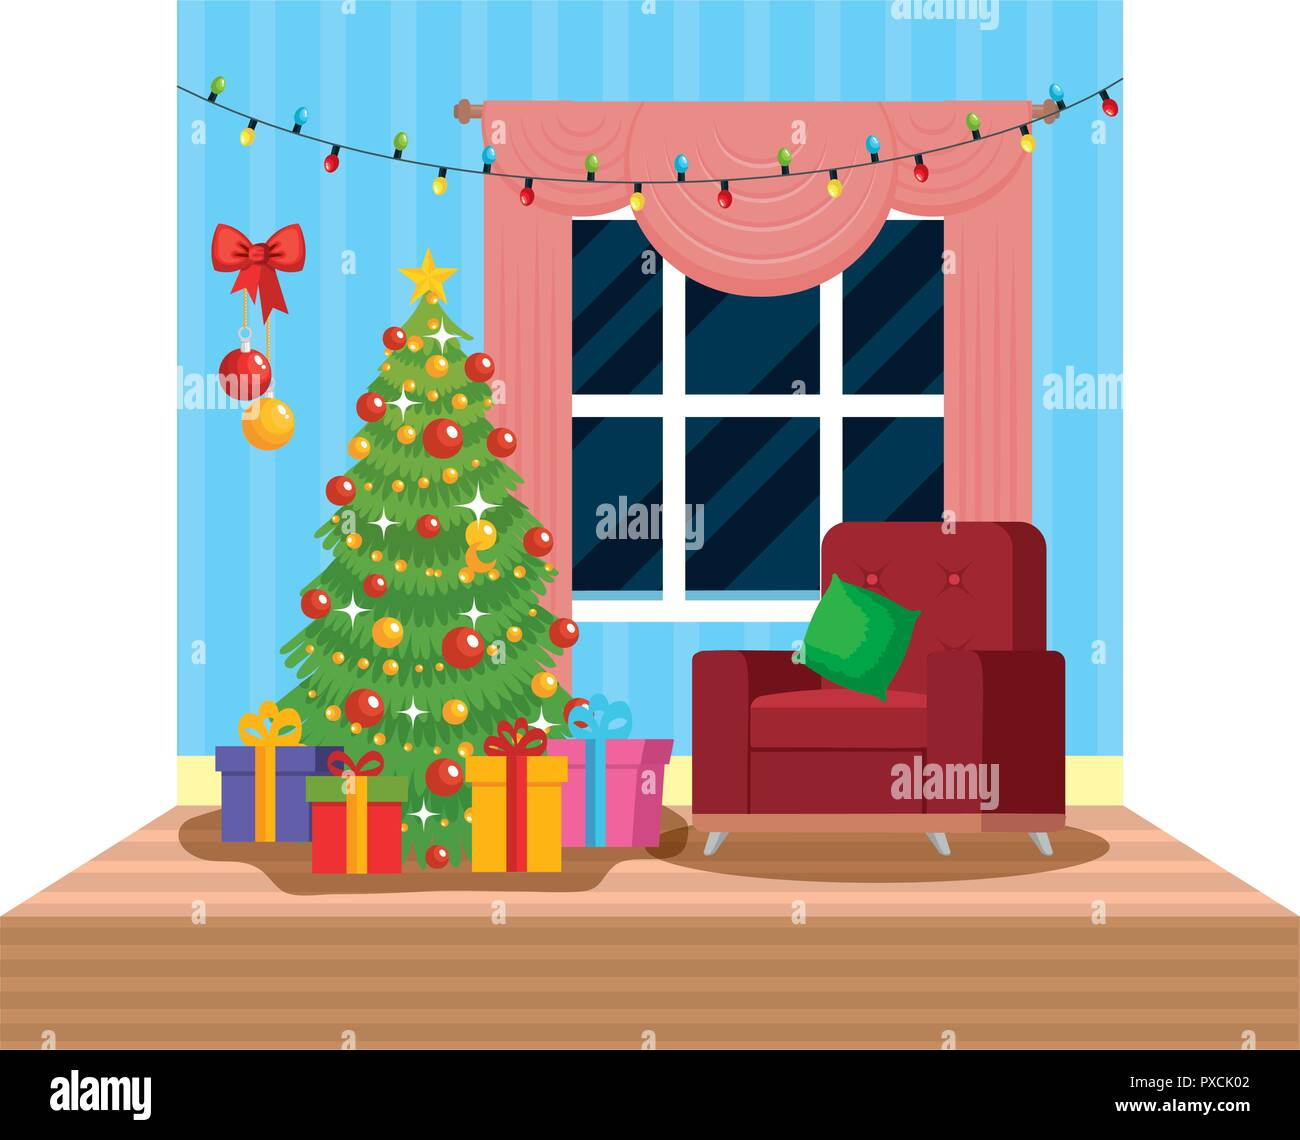 Christmas Room Stock Vector Image Of Illuminated: Living Room With Christmas Decoration Scene Vector